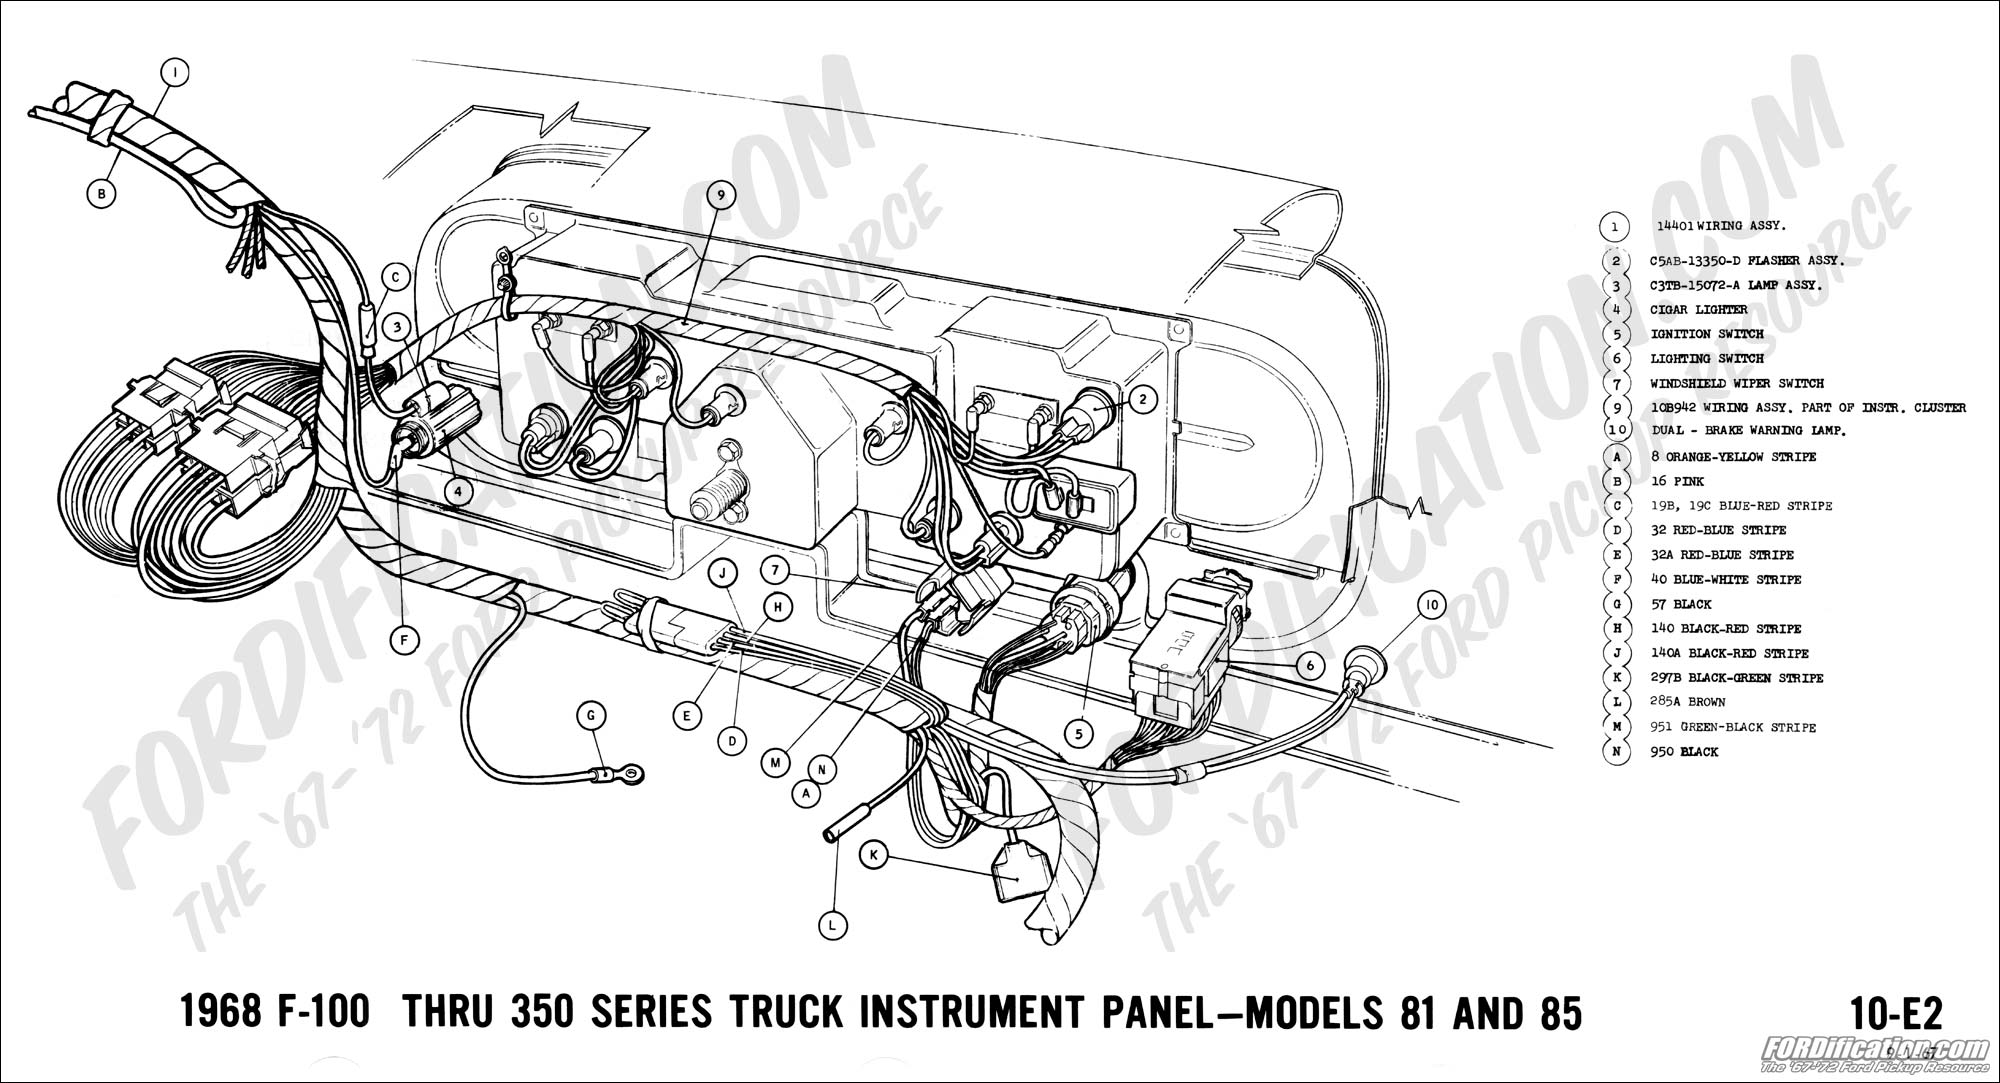 1968 Ford Truck Wiring Diagram Library F 250 Turn Signal 100 Thru 350 Instrument Panel Technical Drawings And Schematics